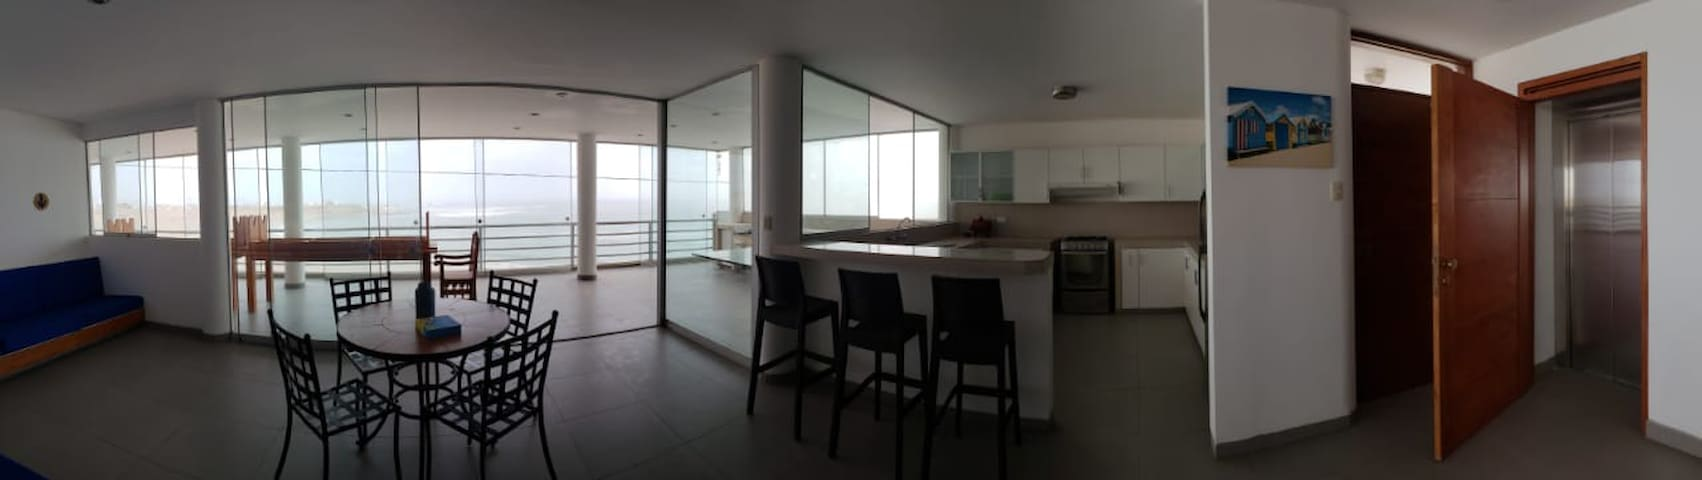 BIG FLAT 200 M2 WITH PANORAMIC VIEW TO THE BEACH